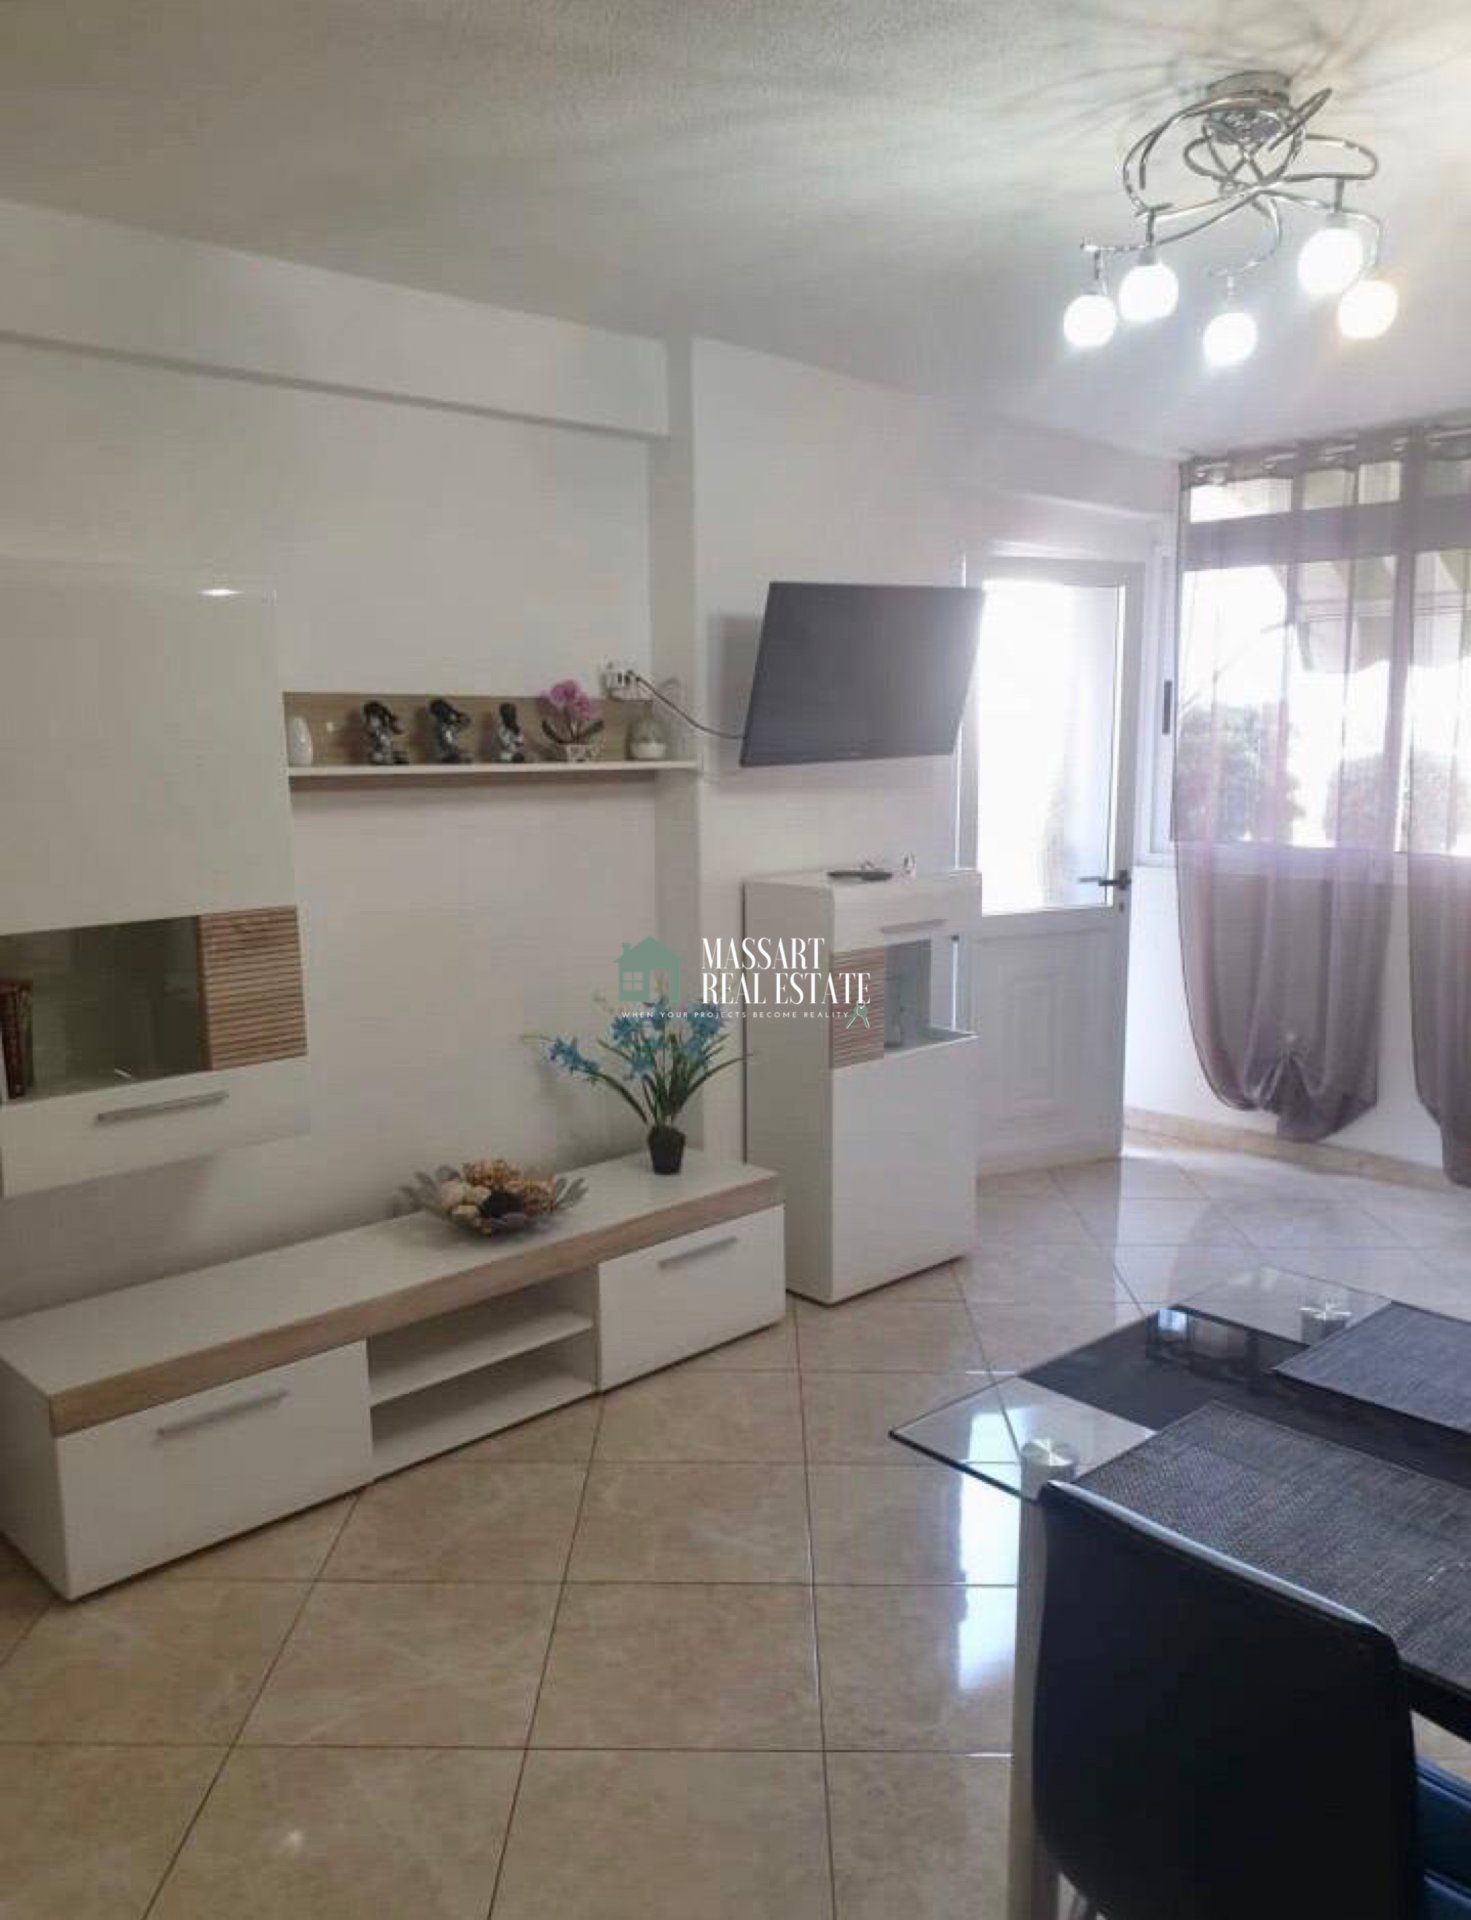 Furnished and recently renovated apartment of 50 m2 located in the strategic area of Las Américas, in the Copacabana residential complex.